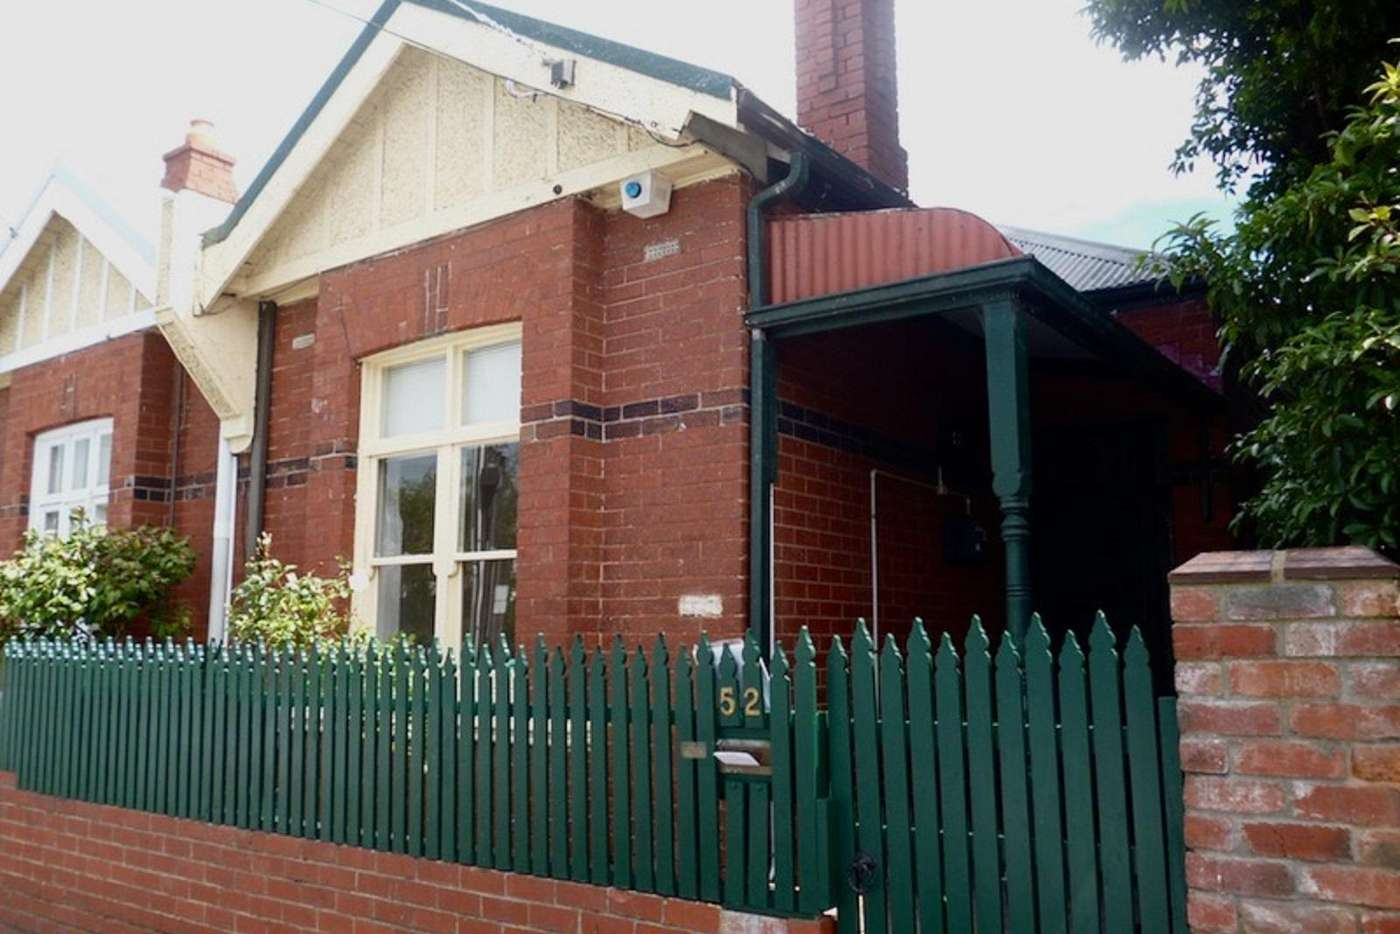 Main view of Homely house listing, 52 Havelock Street, St Kilda VIC 3182